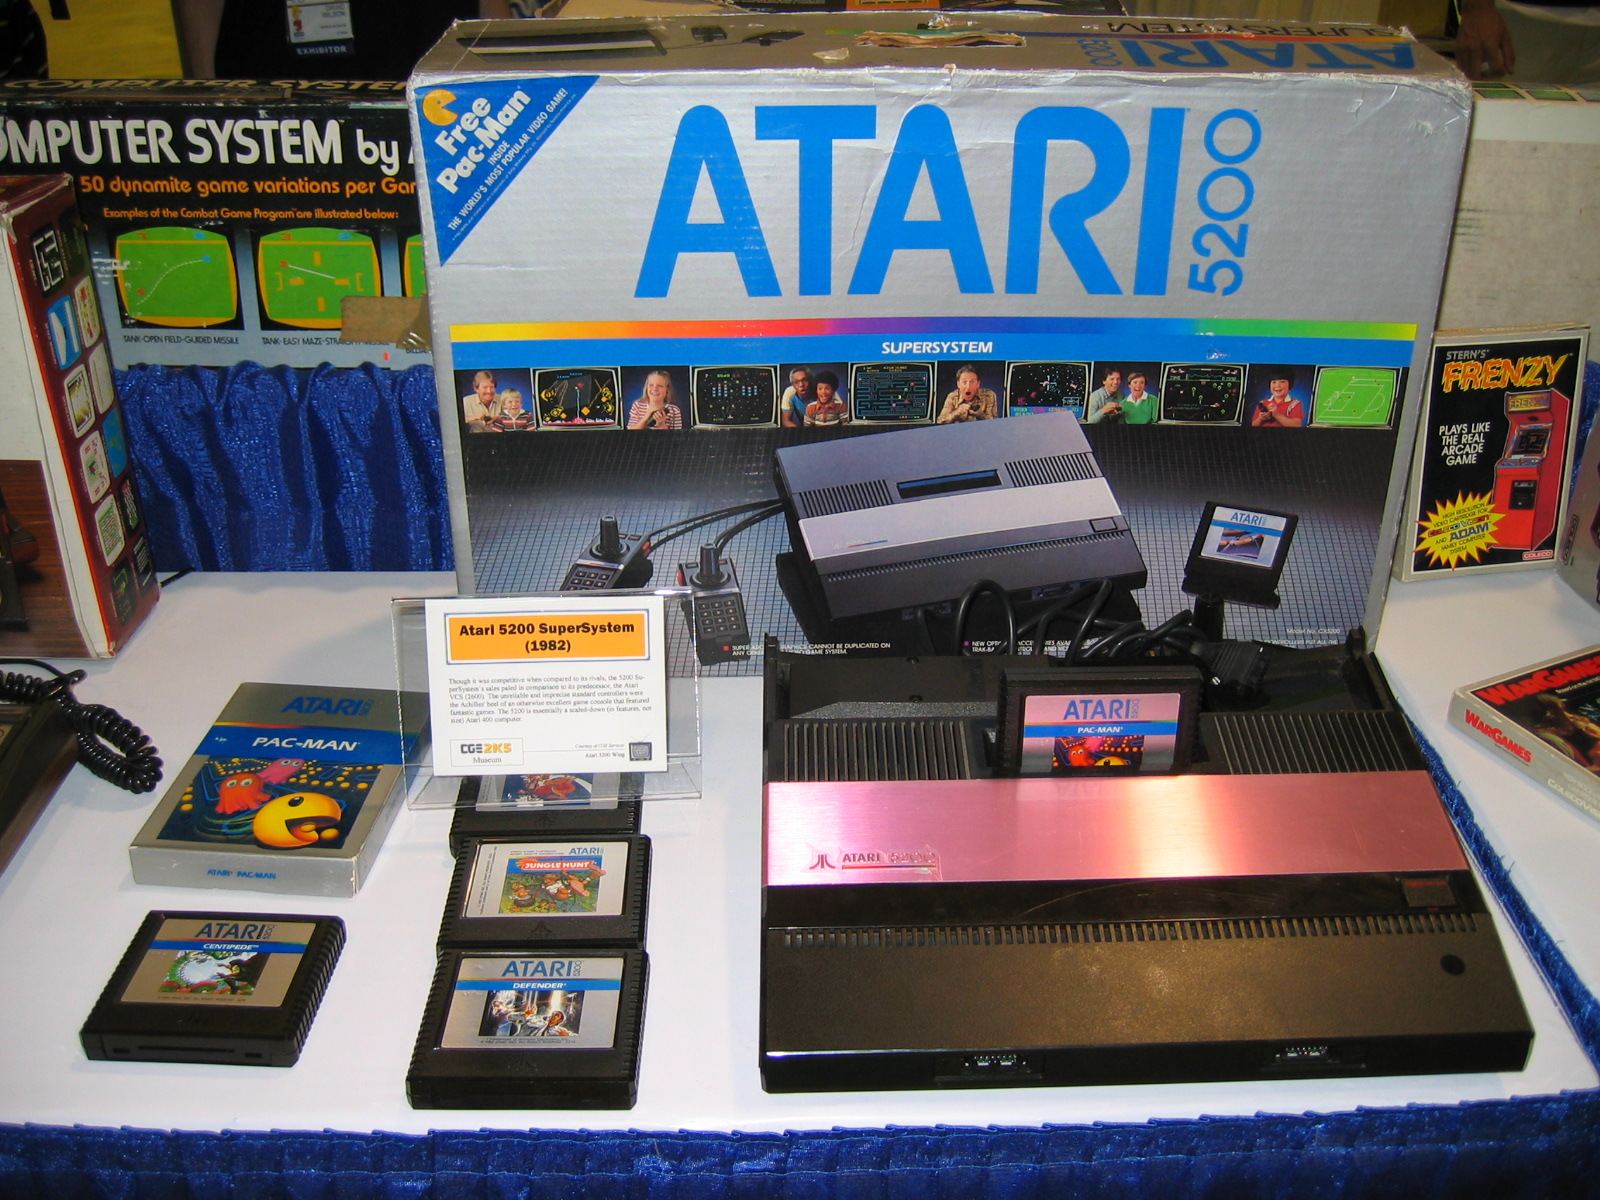 http://upload.wikimedia.org/wikipedia/commons/e/e6/Atari_5200_-_trojandan_14871272.jpg